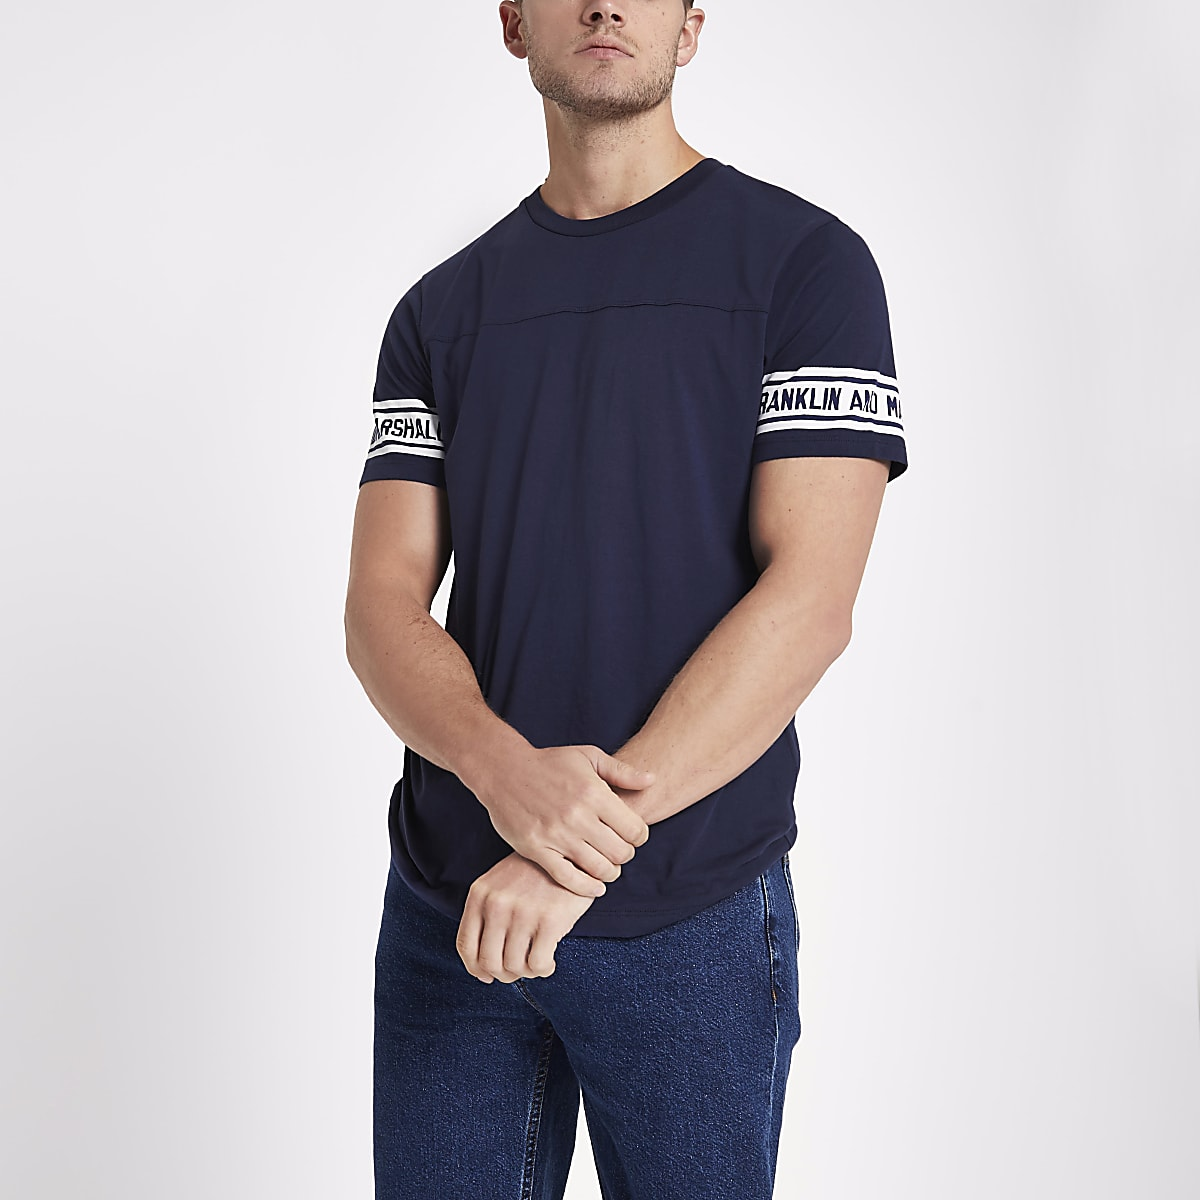 Navy Franklin & Marshall varsity T-shirt